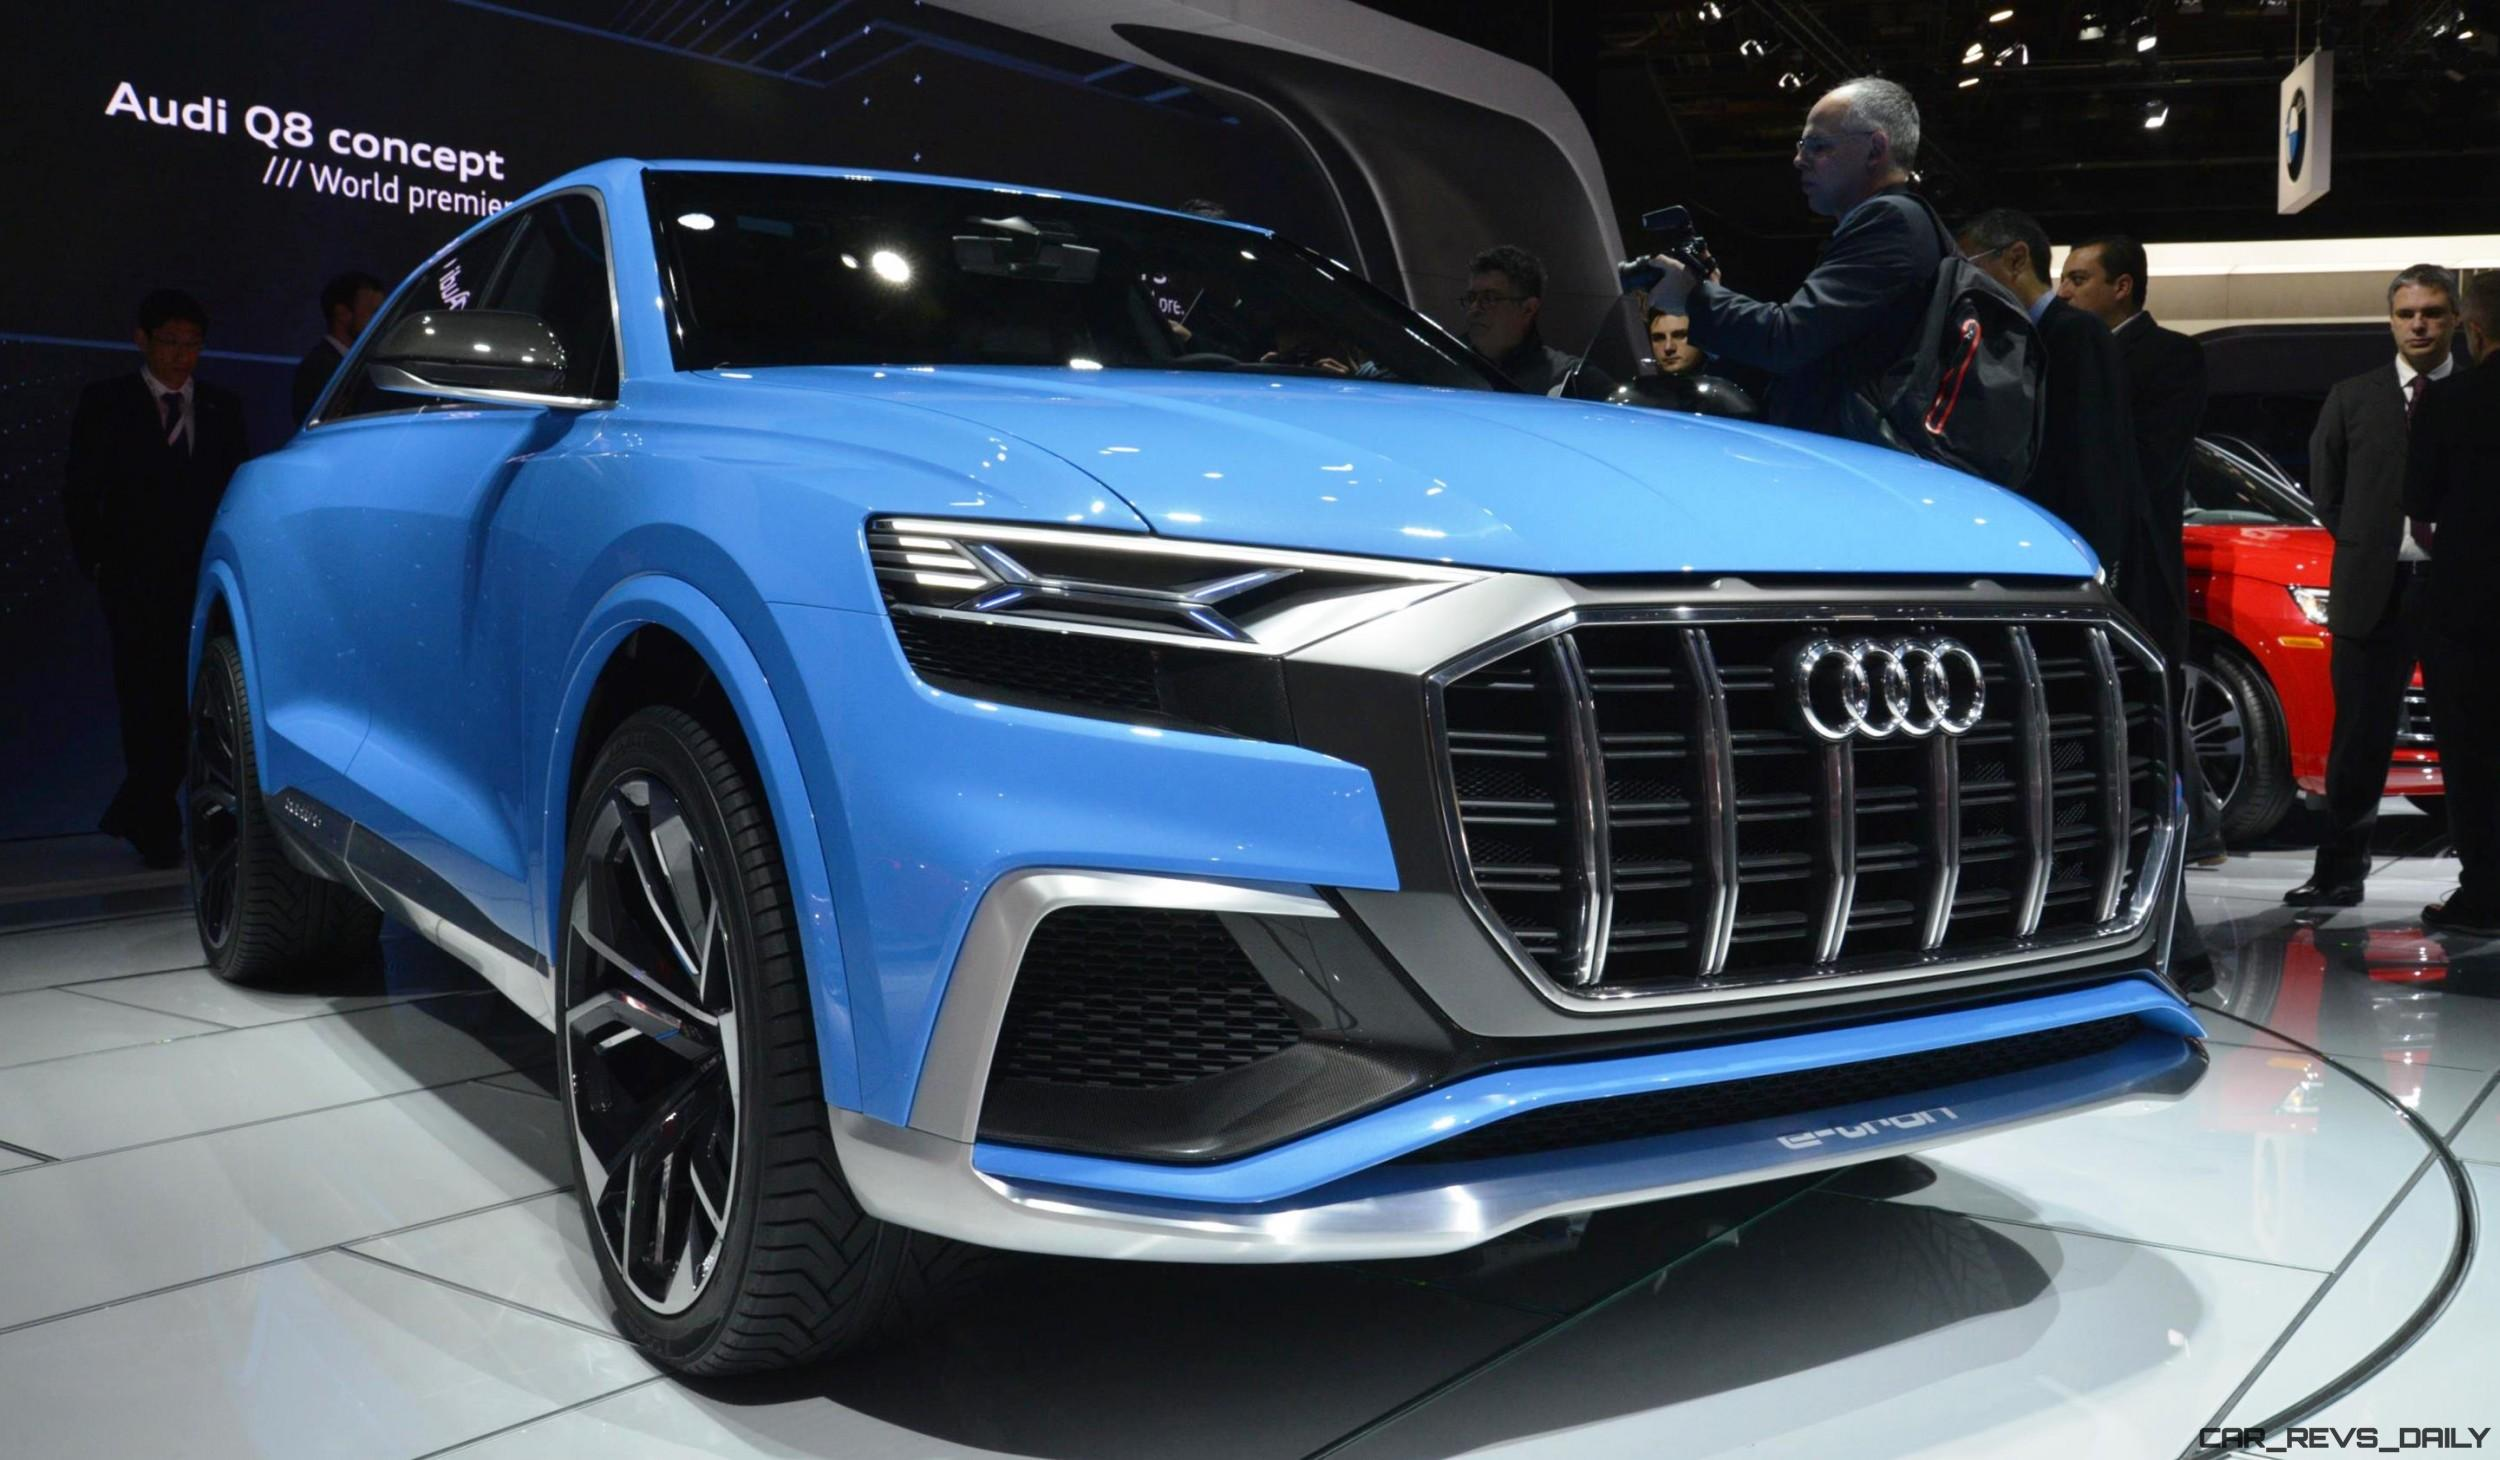 2017 audi q8 concept near production suv limo shows face in detroit car shopping. Black Bedroom Furniture Sets. Home Design Ideas